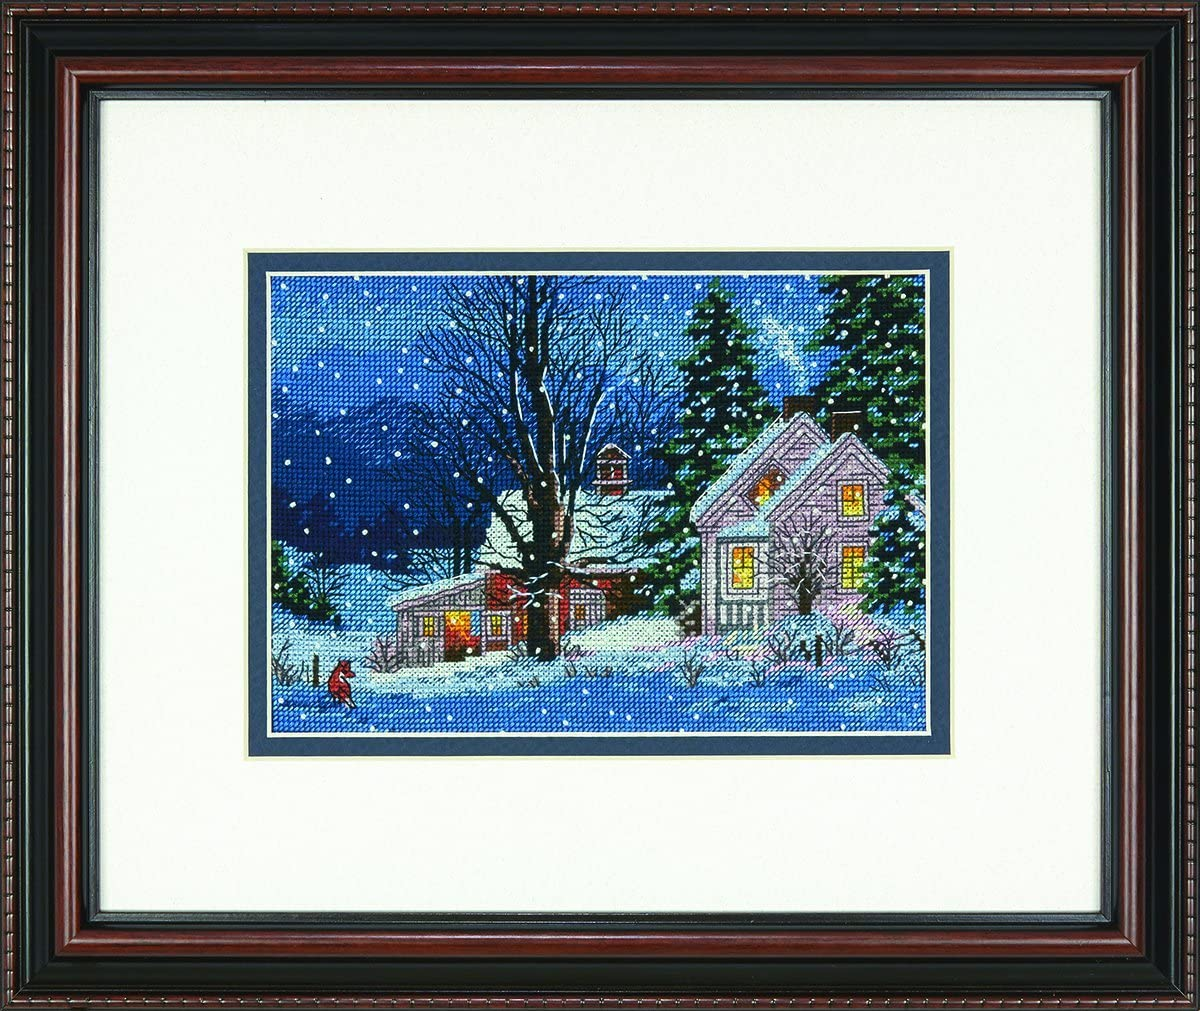 Dimensions Gold Collection Counted Cross Wi Stitch Night' 2021 model Denver Mall 'Quiet